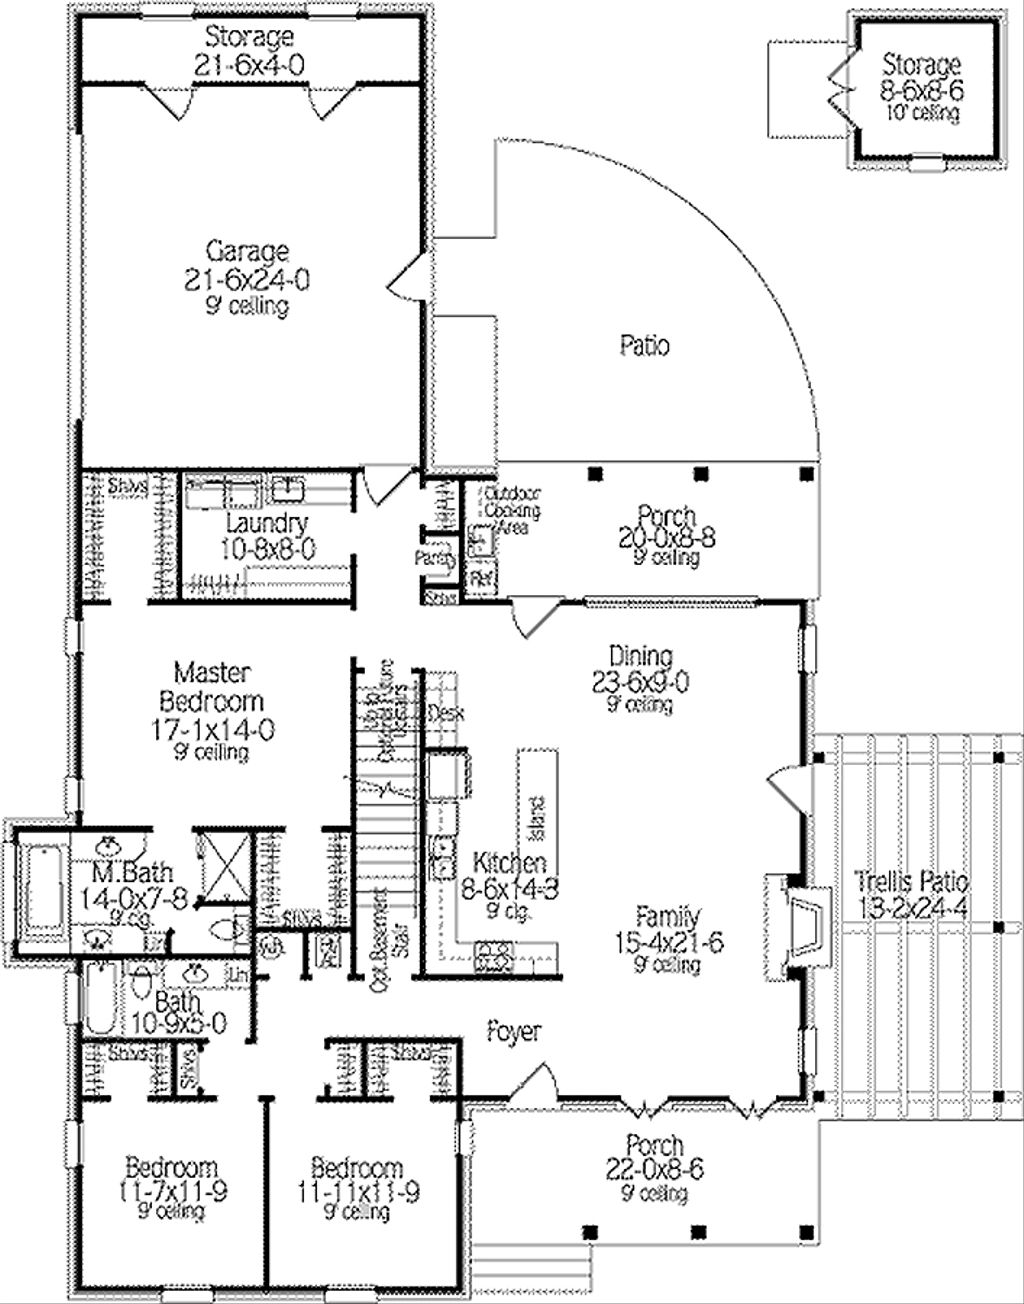 Country style house plan 3 beds 2 baths 2062 sq ft plan for Home plan com